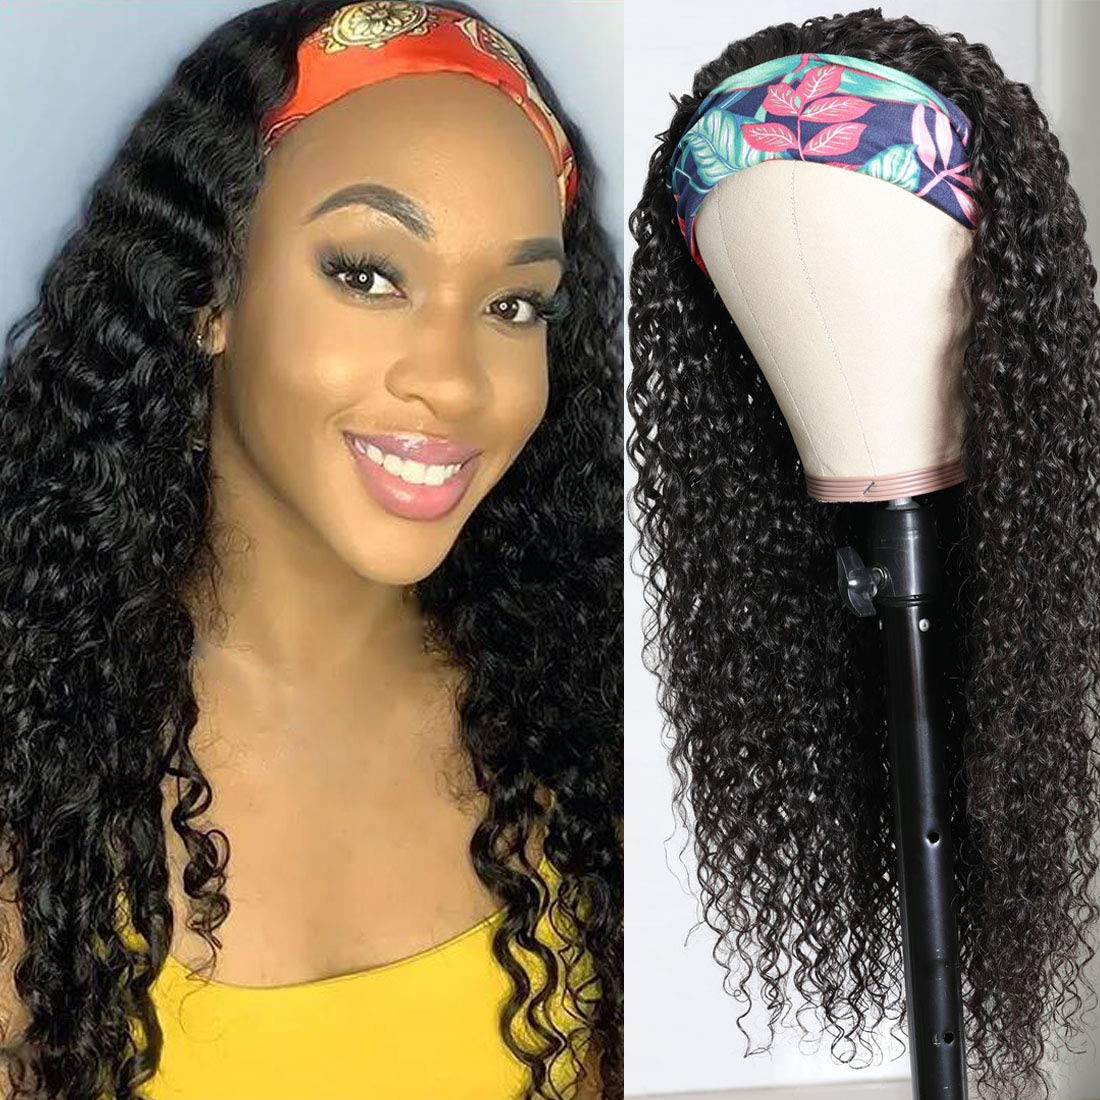 Beauty Forever Headband Human Hair Wig Jerry Curly Glueless Human Hair Scarf Wigs With Pre-attached Scarf Non Lace Wigs for women Wear and Go Wig No Glue No Sew In Natural Color 150% Density 26 Inch